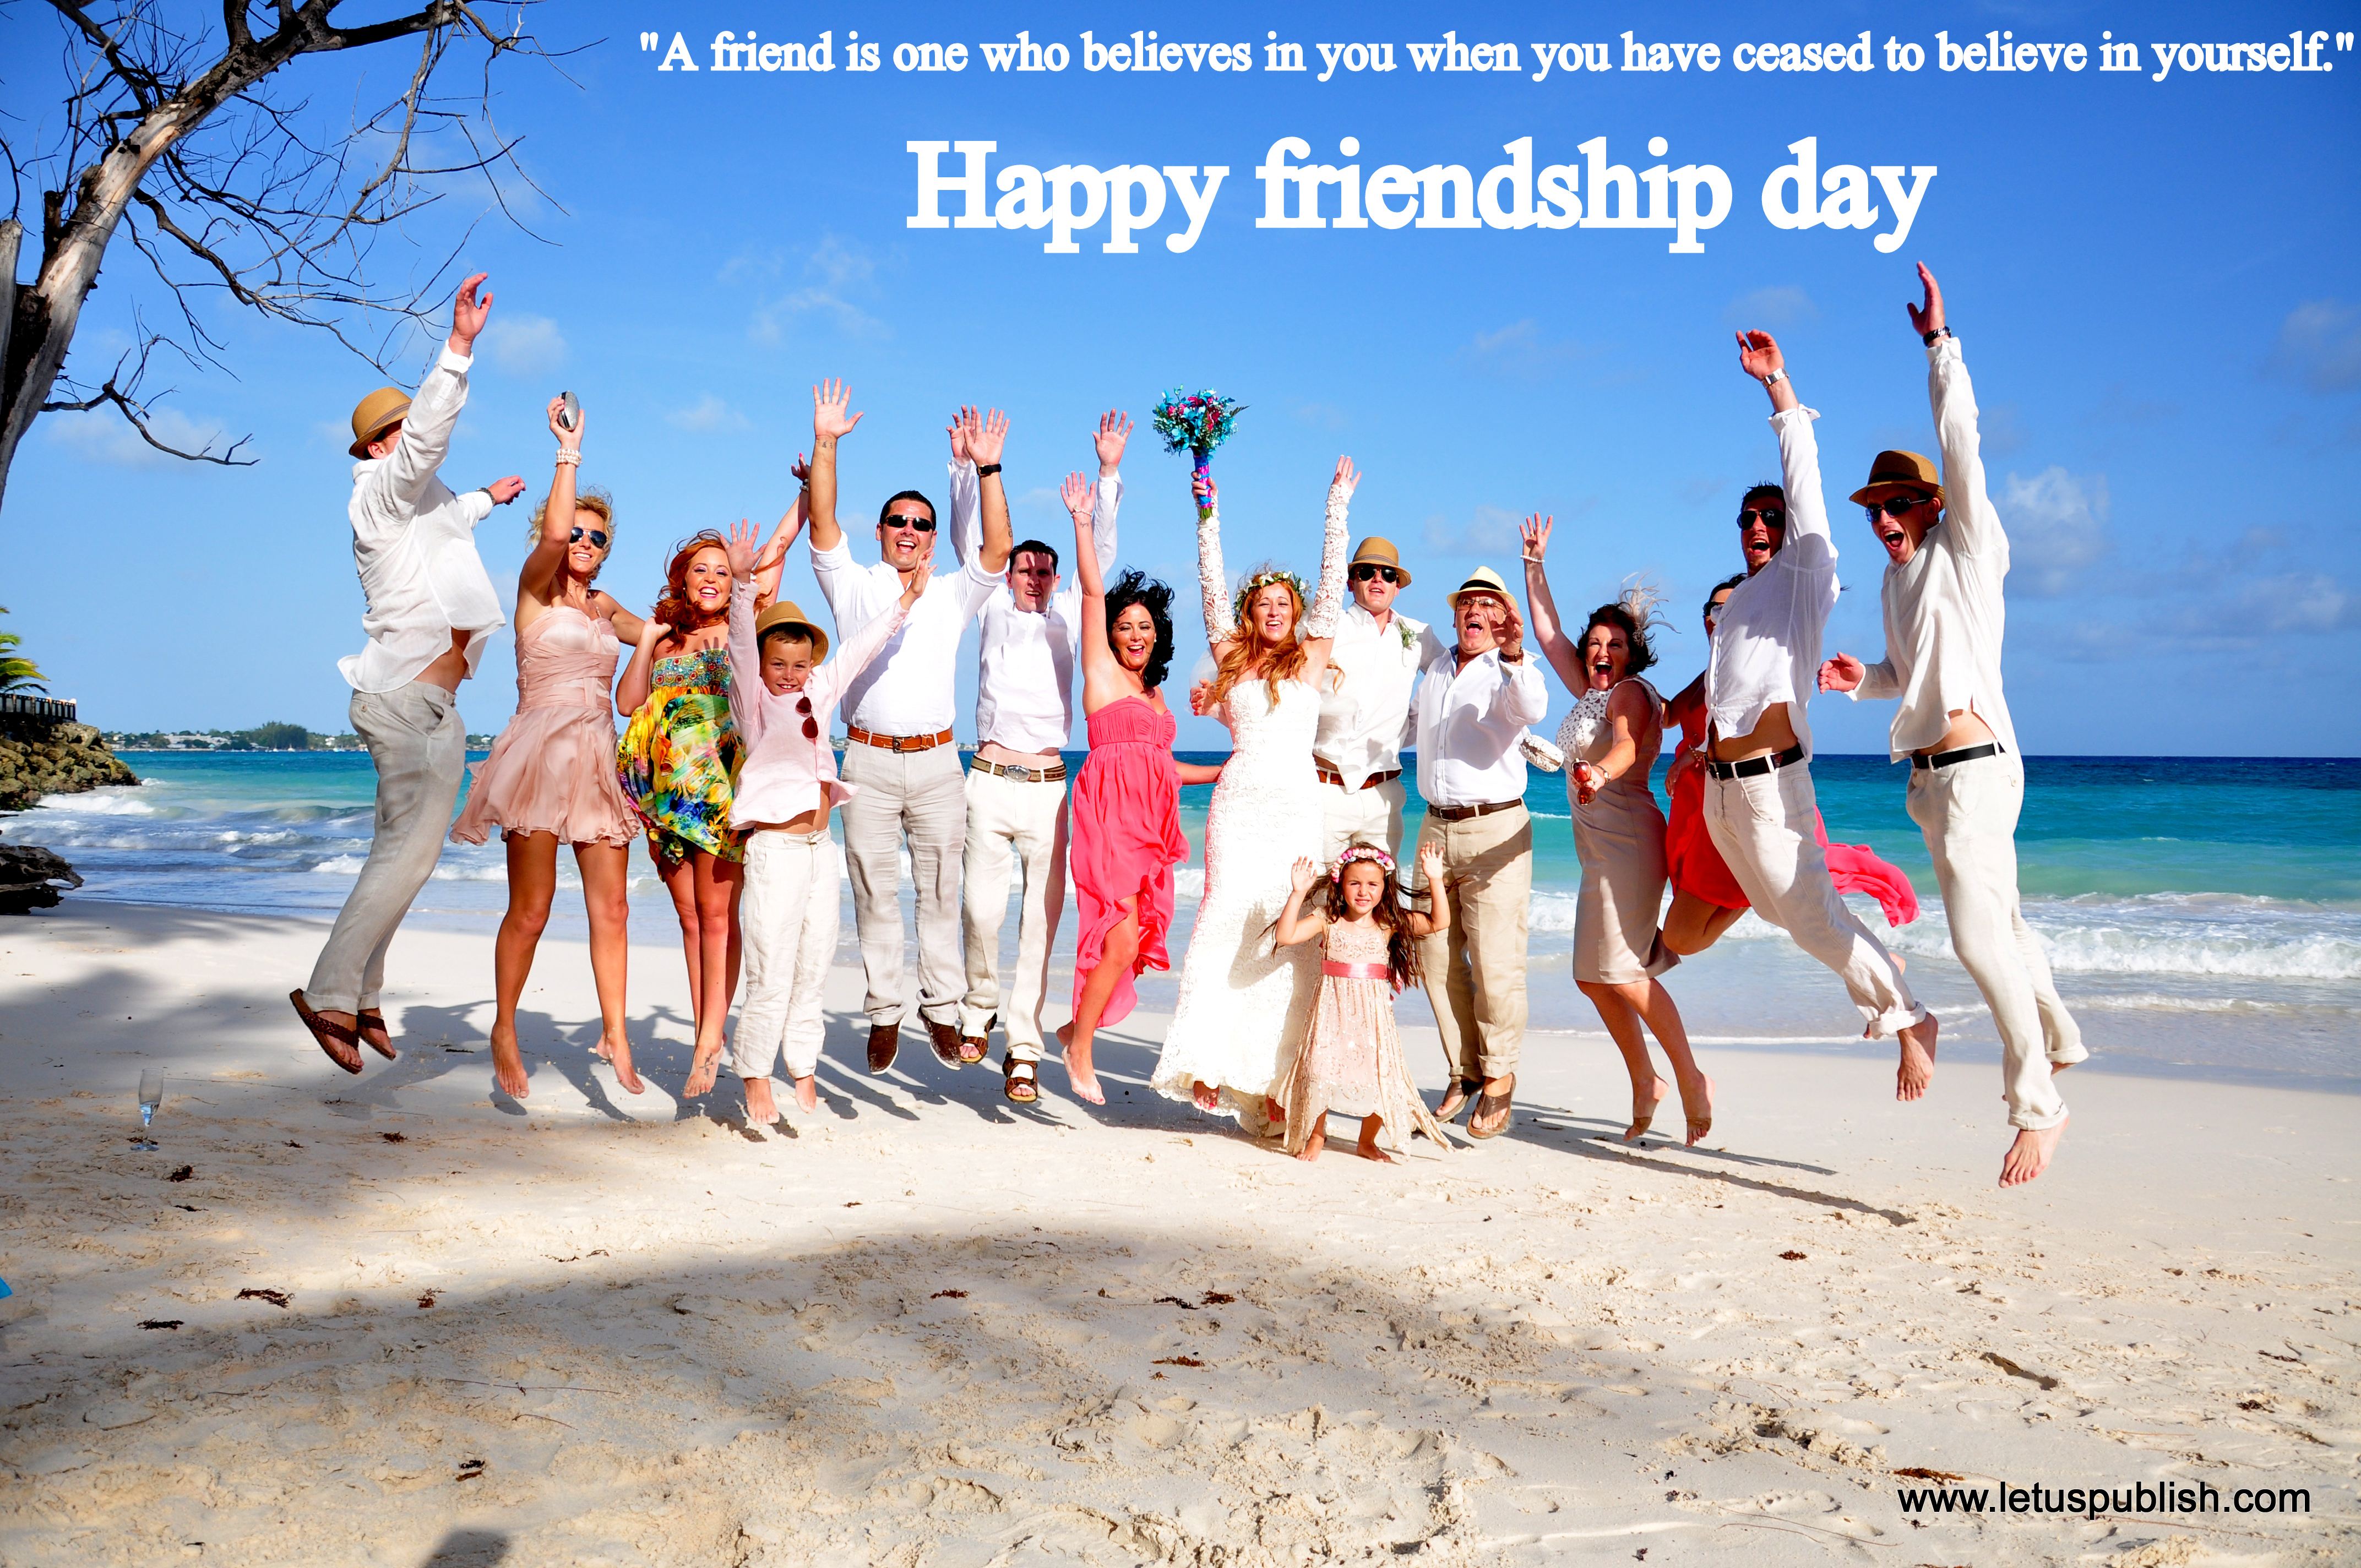 Happy friendship day free download beach wallpaper